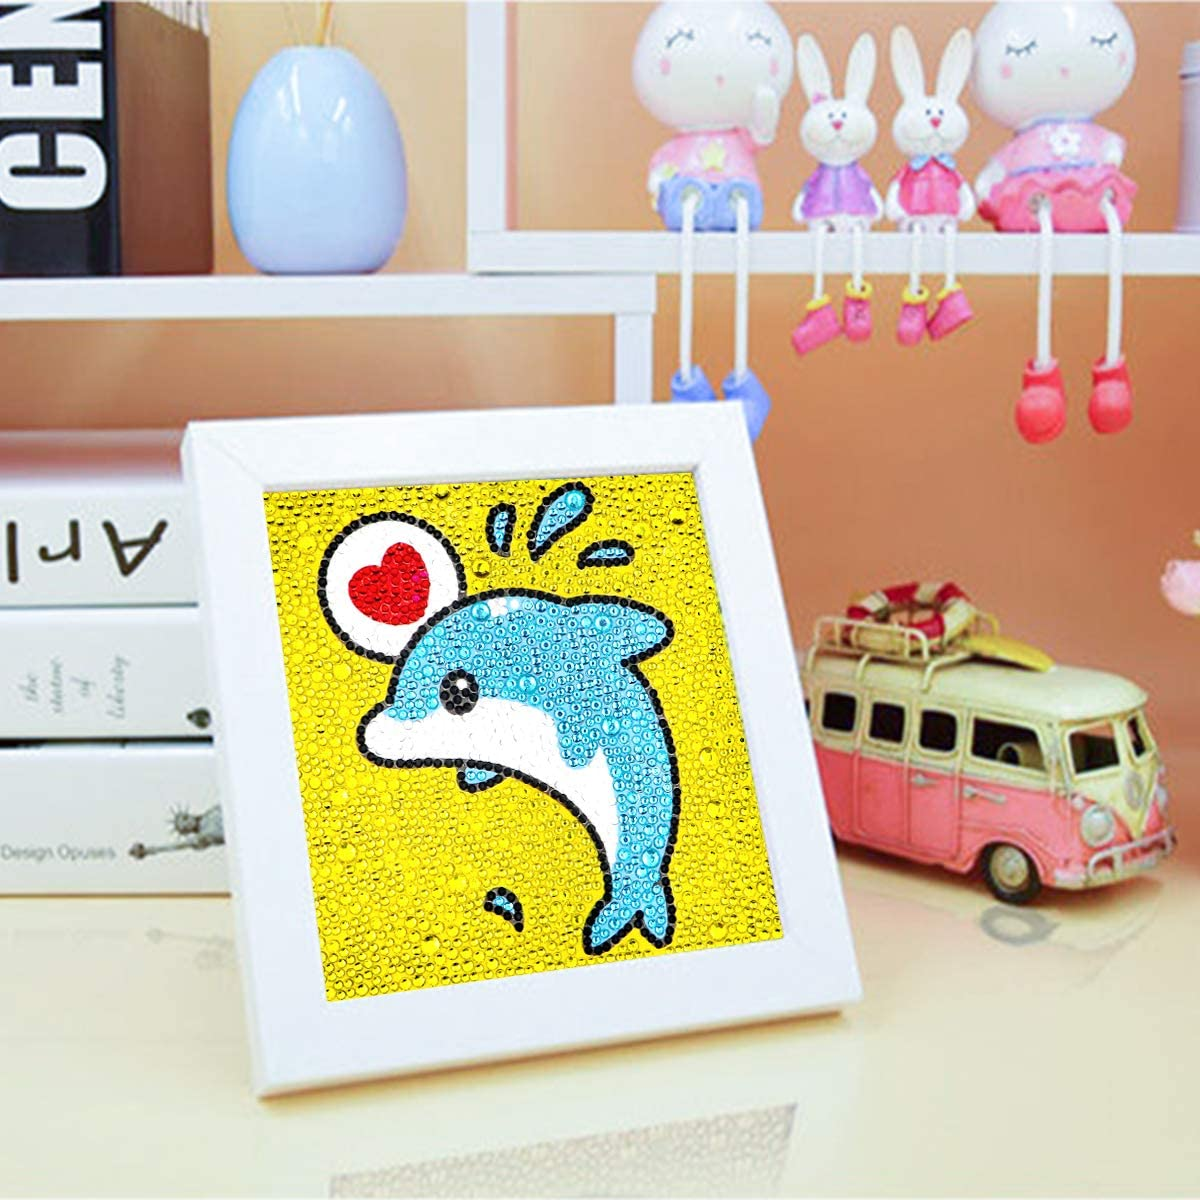 YOLUFER Easy and Relaxing Mini DIY 5d Diamond Painting Kits Mosaic Making with White Frame for Kids Little Dolphin Size 6 x 6inches